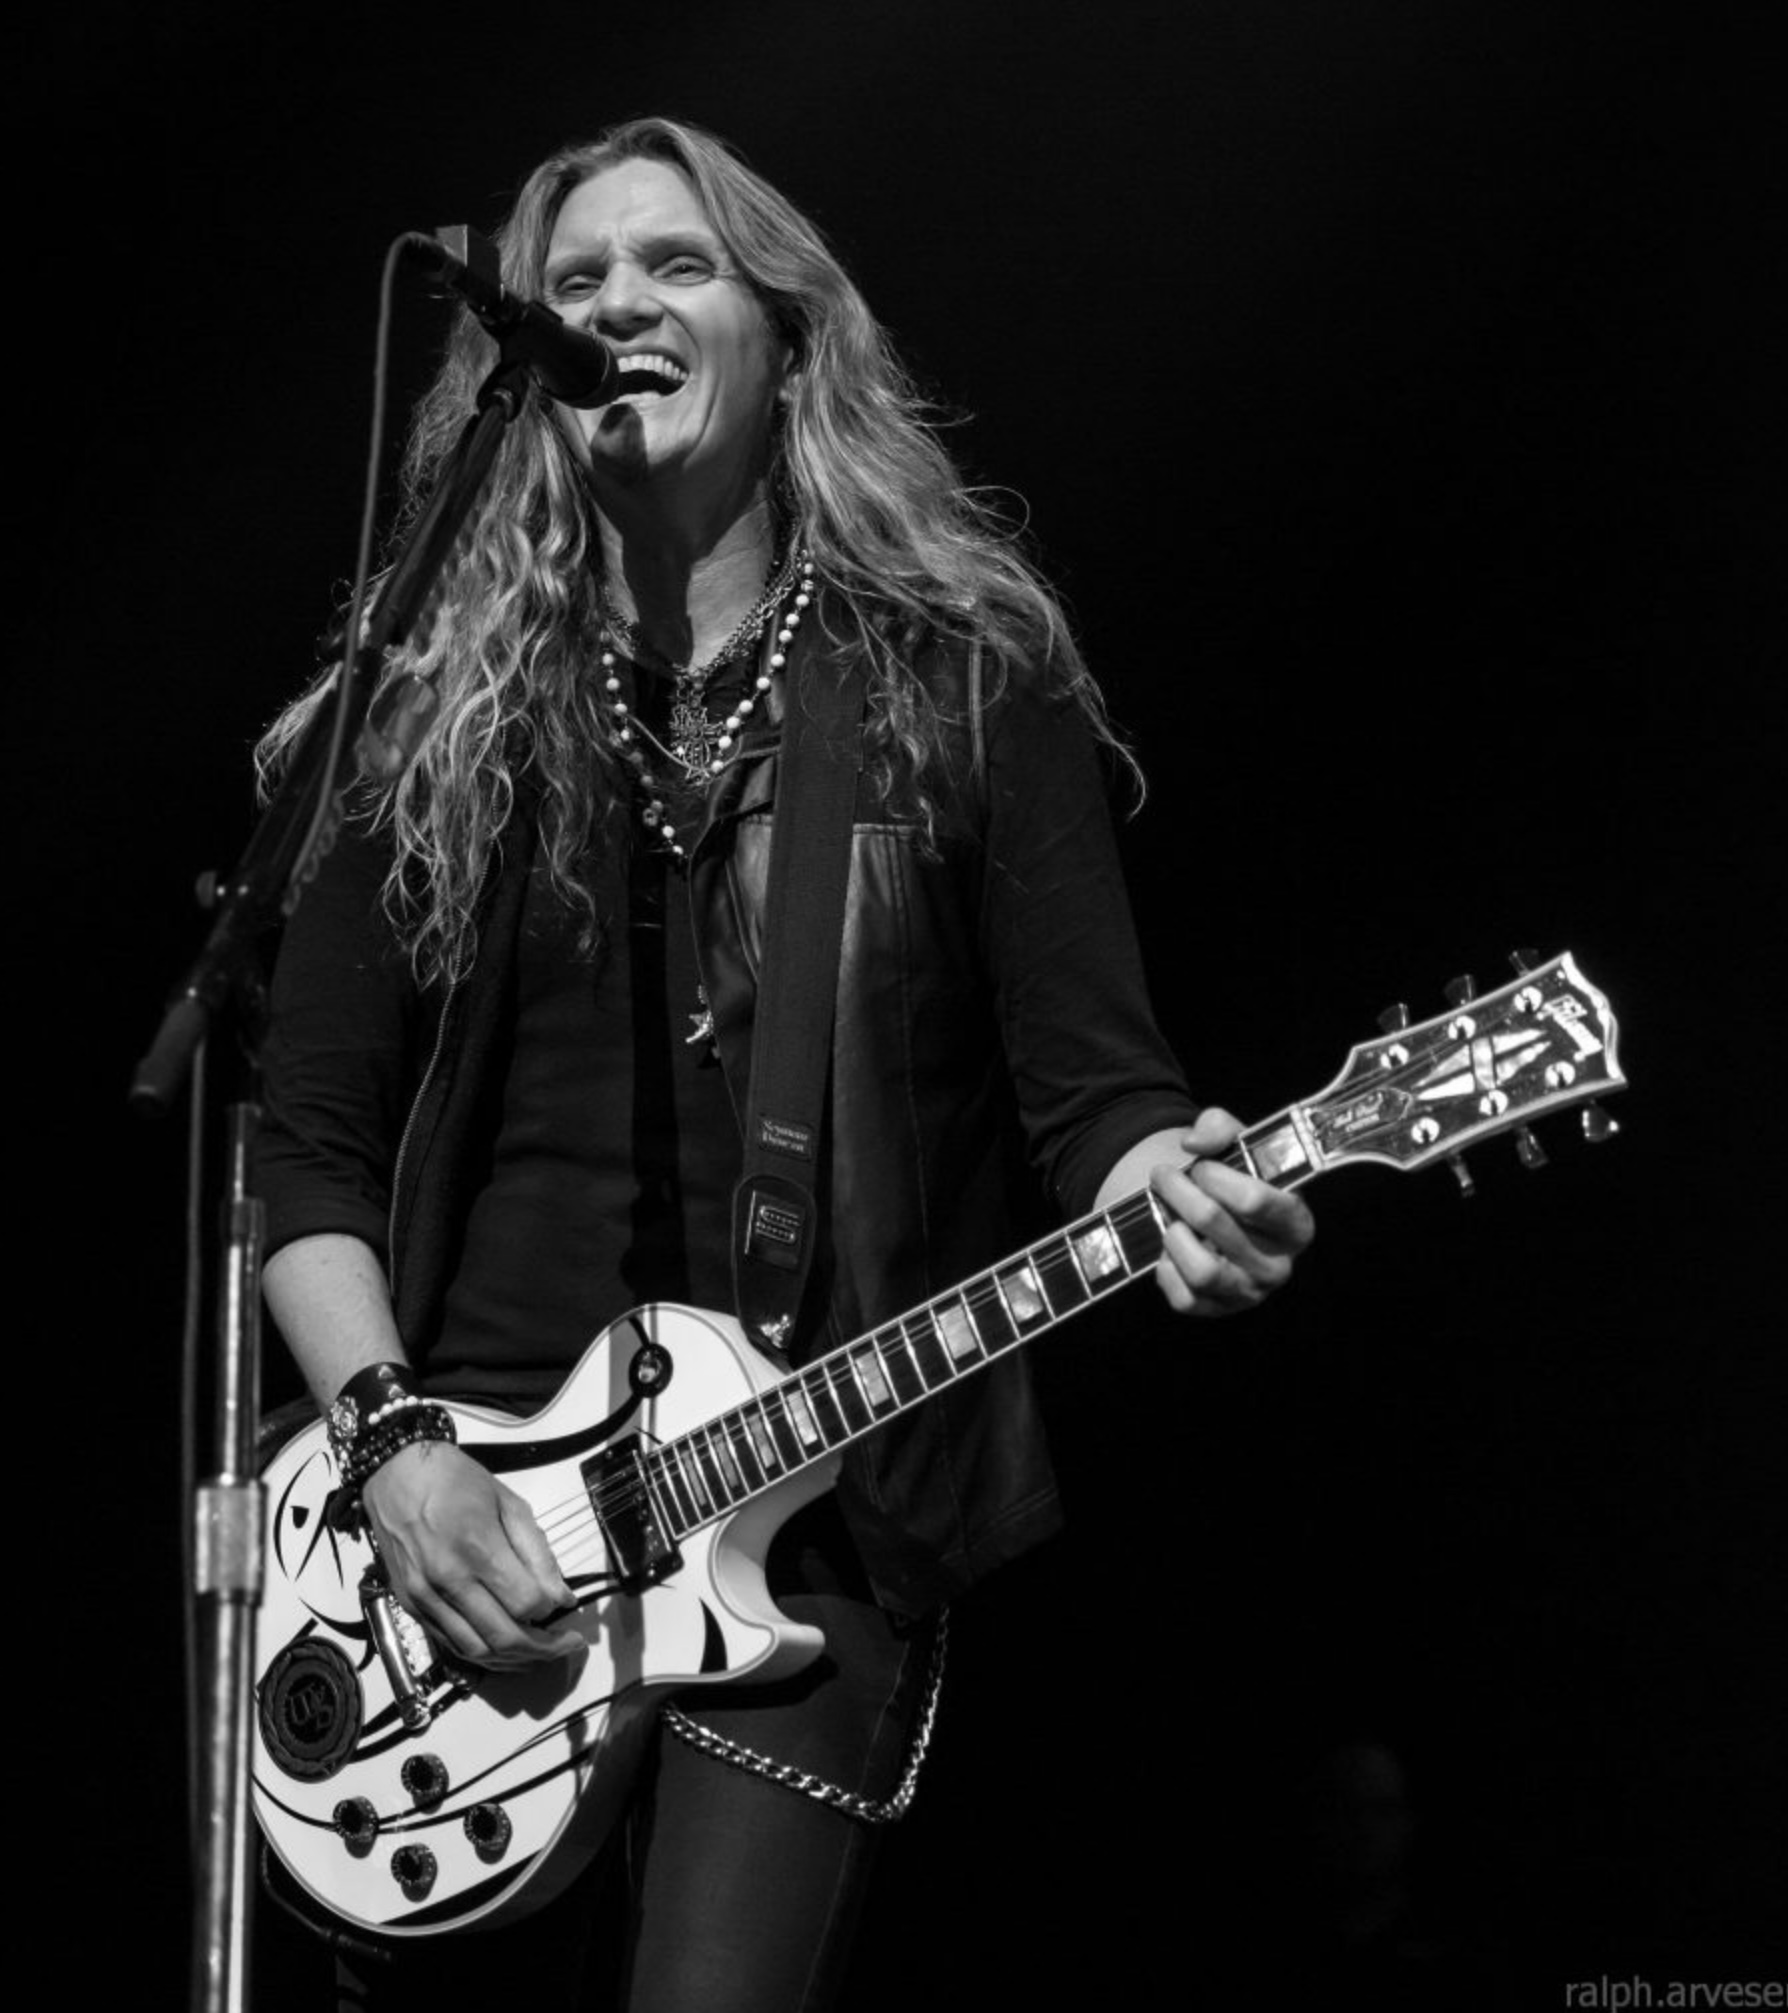 Joel Hoekstra interview: exclusive details on his upcoming album!